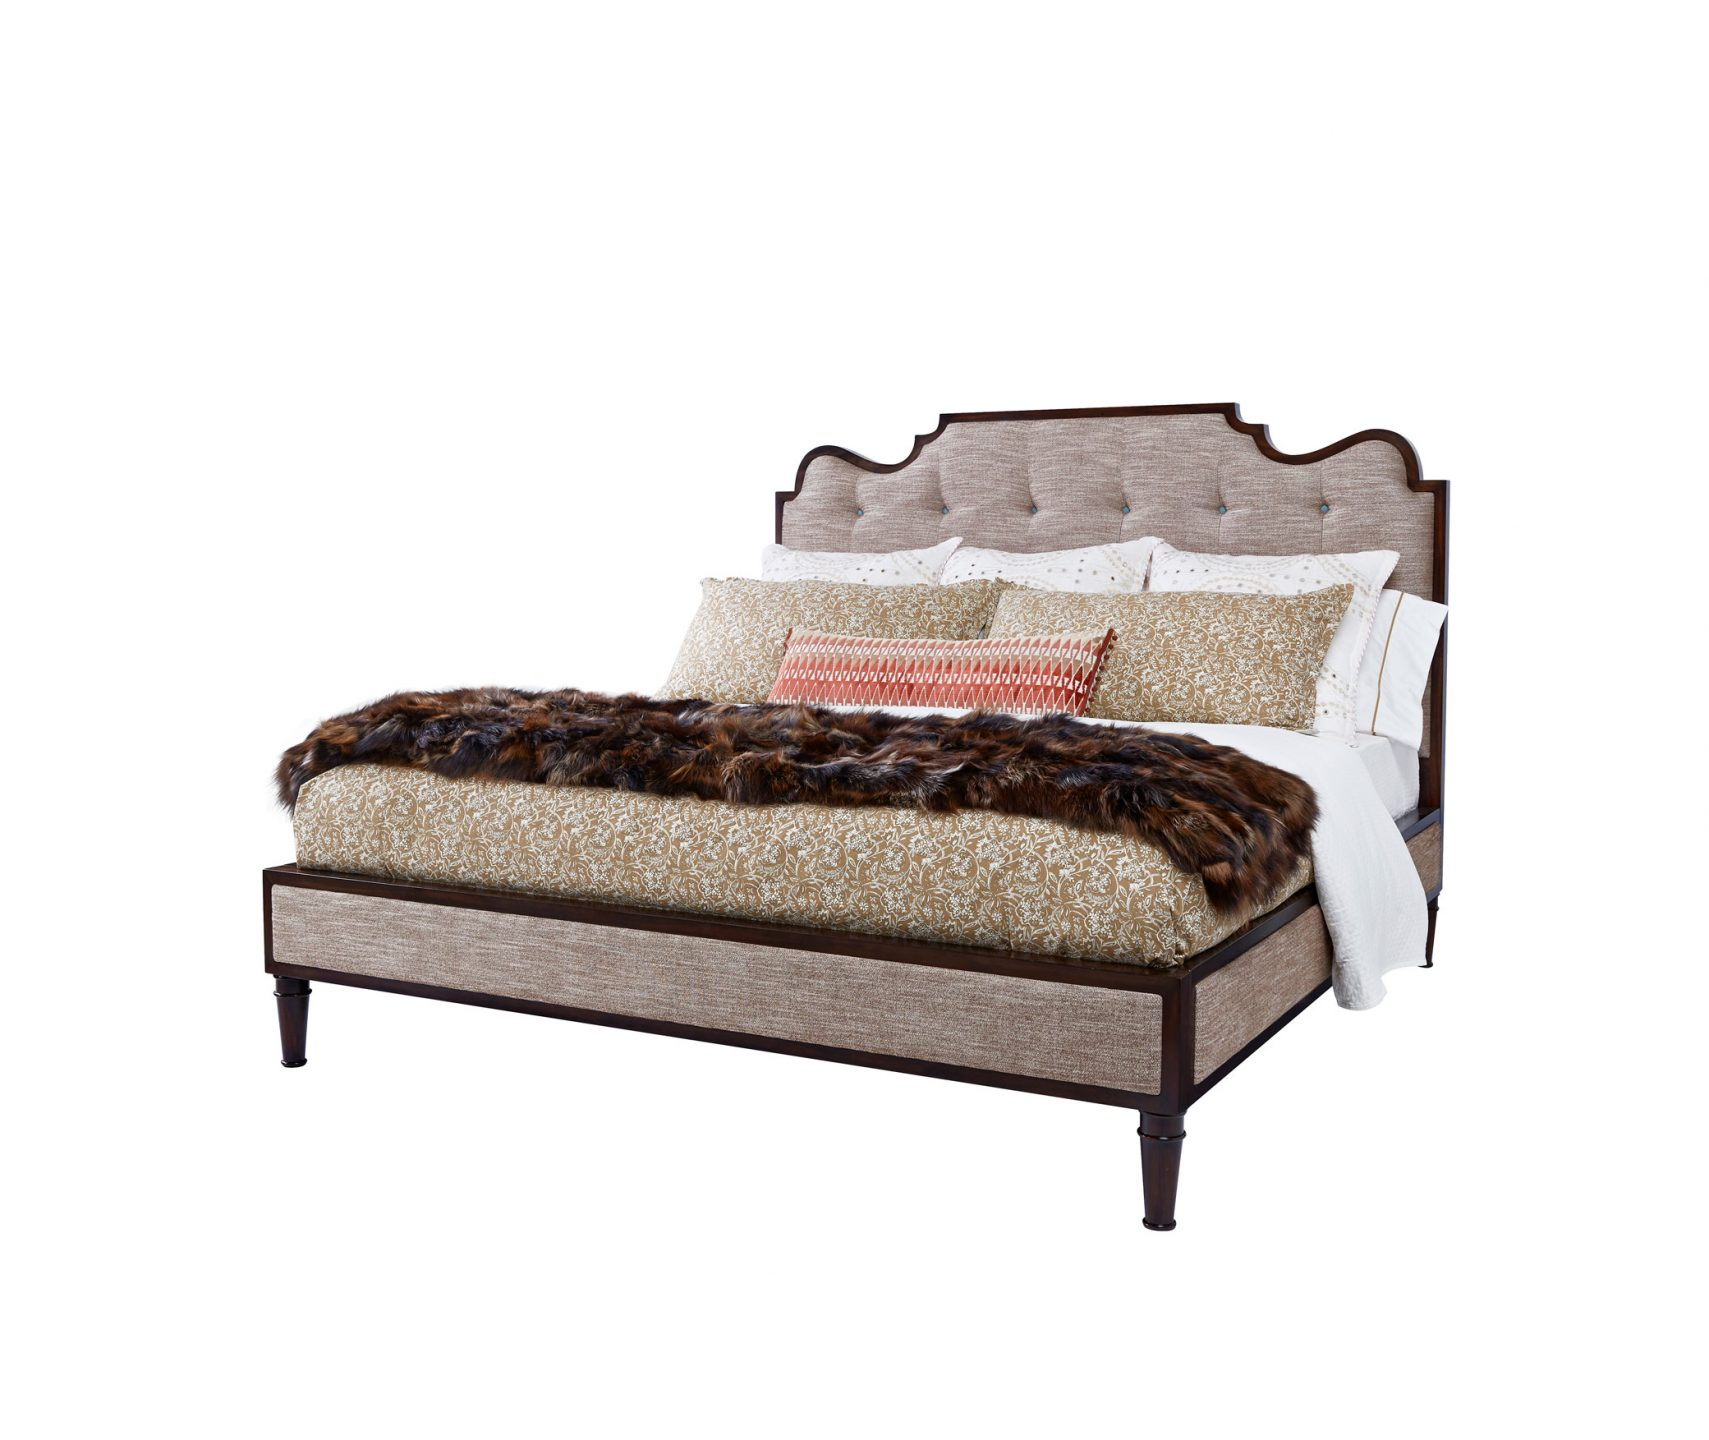 Theodore-Alexander_Ava-Bed_int_product